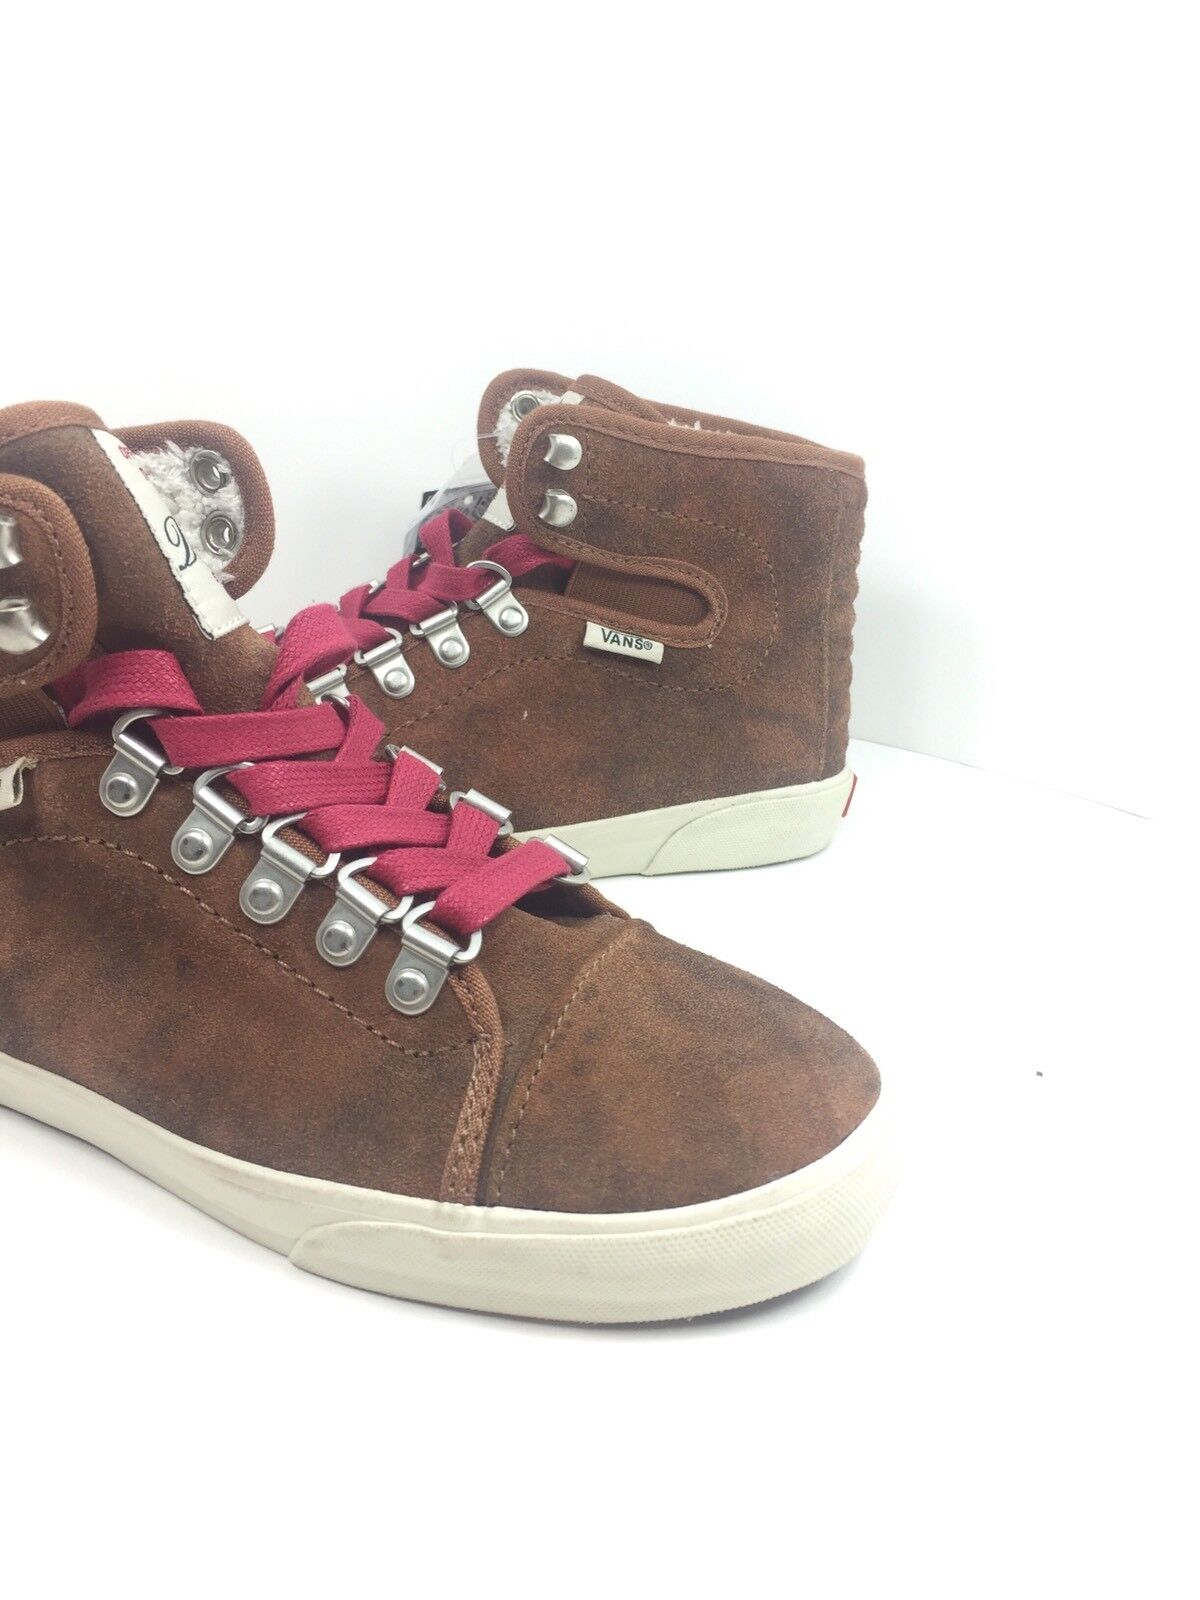 615a2fcbf53667 VANS Women s Hadley Hiker BOOTS Shoes Brown Red SNEAKERS Size 5 for ...